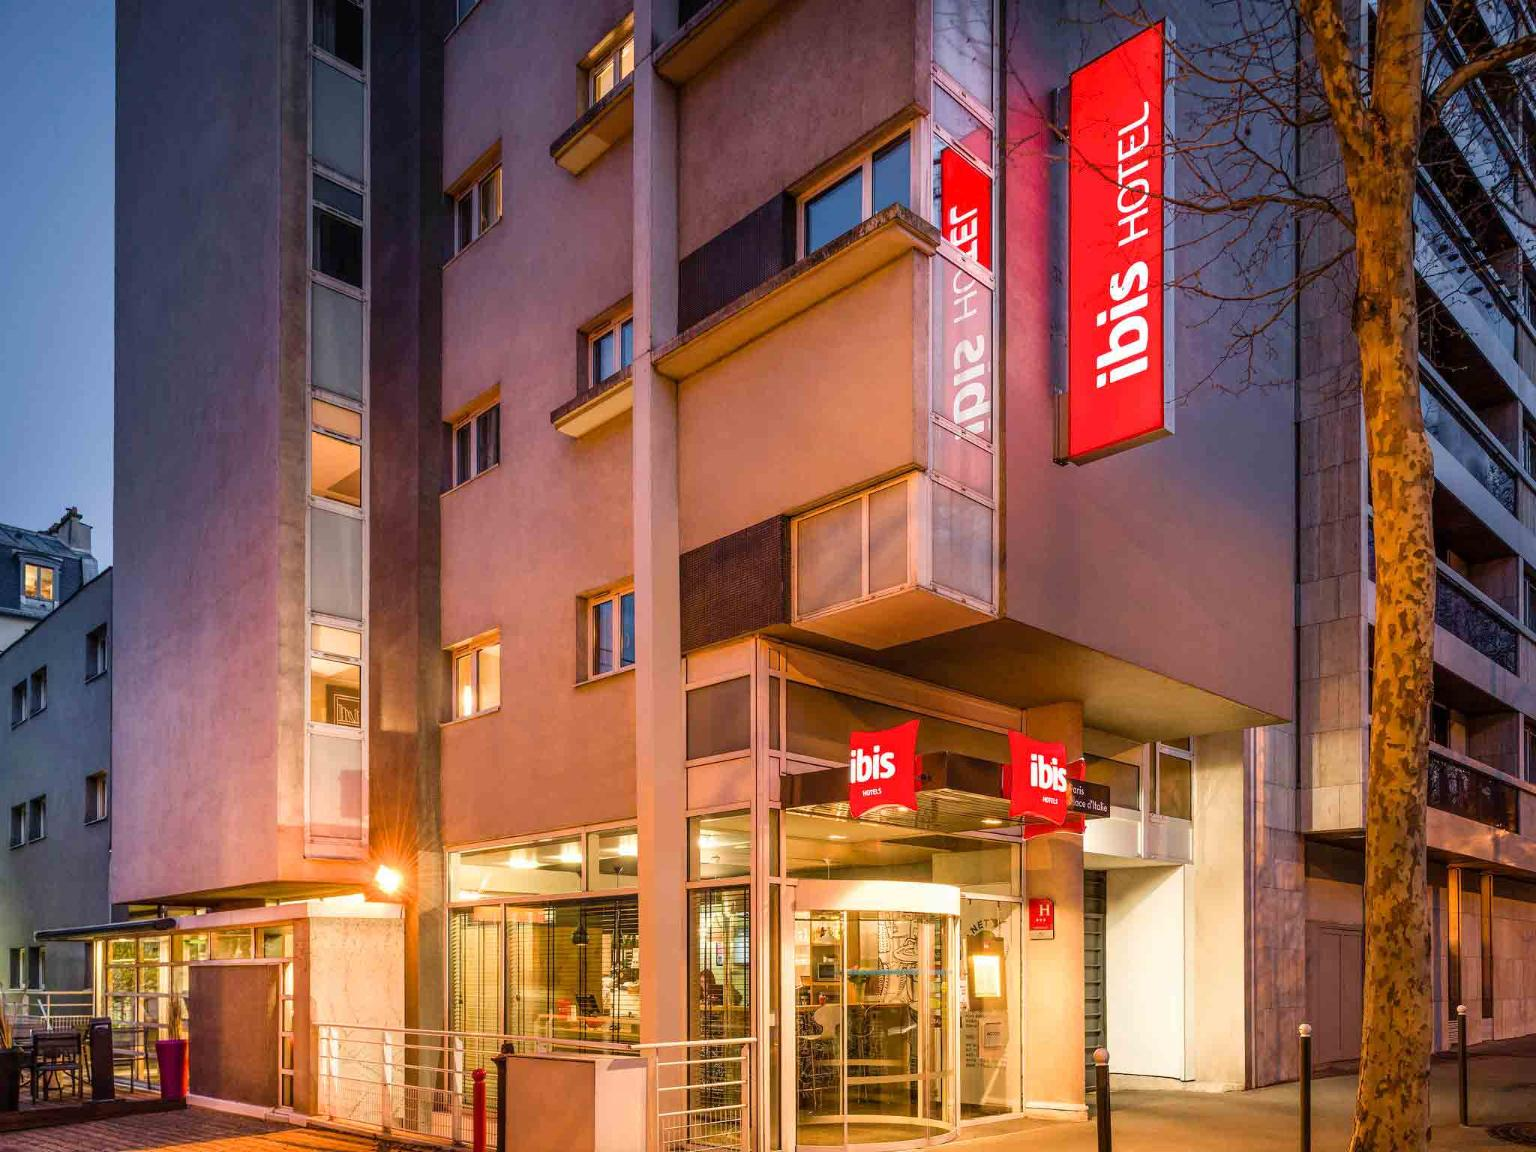 Ibis paris place d 39 italie 13 me h tel 25 avenue stephen pichon 75013 paris adresse horaire - Office du tourisme italien paris horaires ...